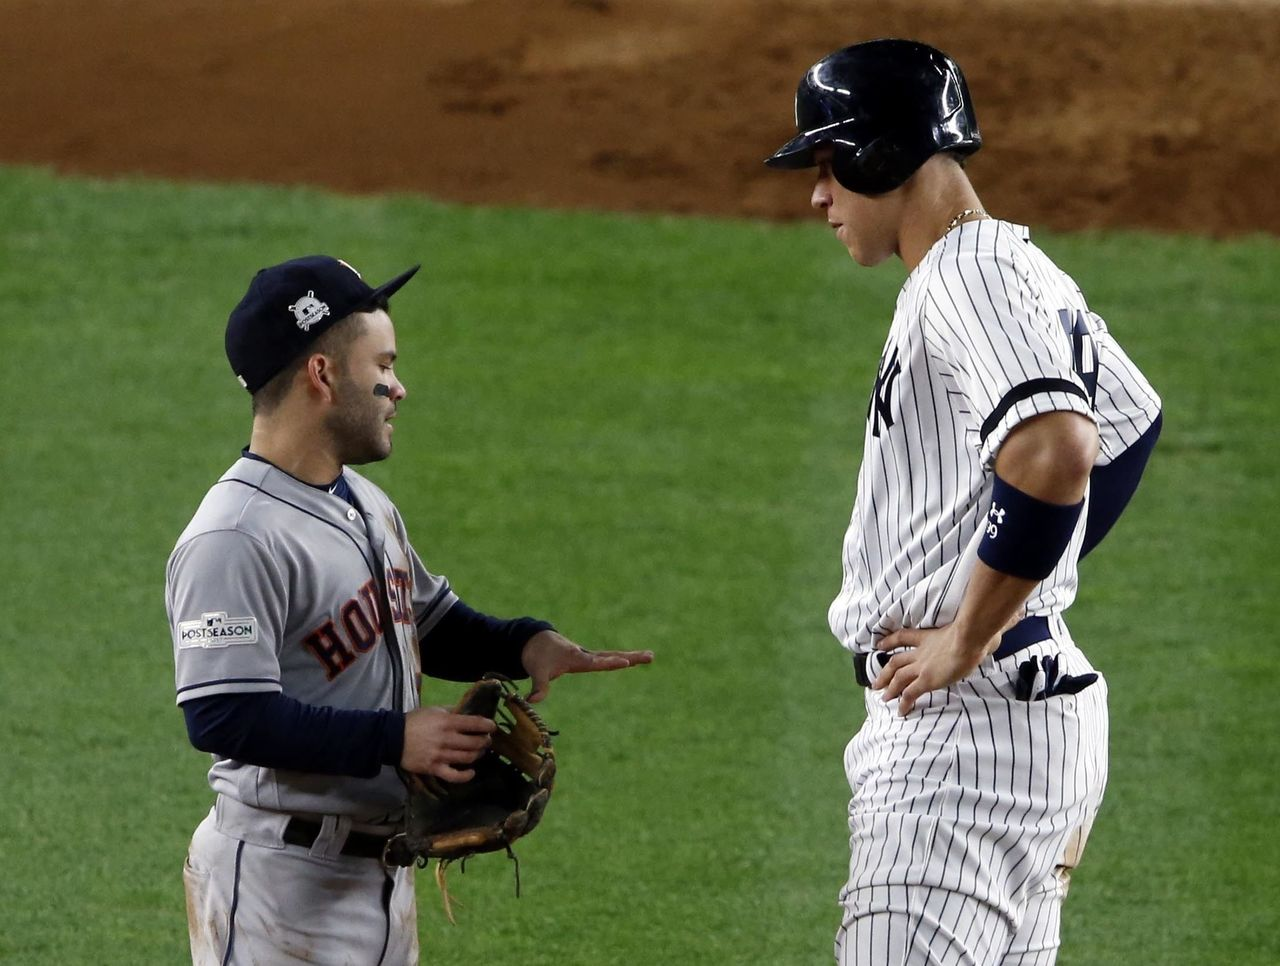 Cropped 2017 10 17t011944z 1737993507 nocid rtrmadp 3 mlb alcs houston astros at new york yankees